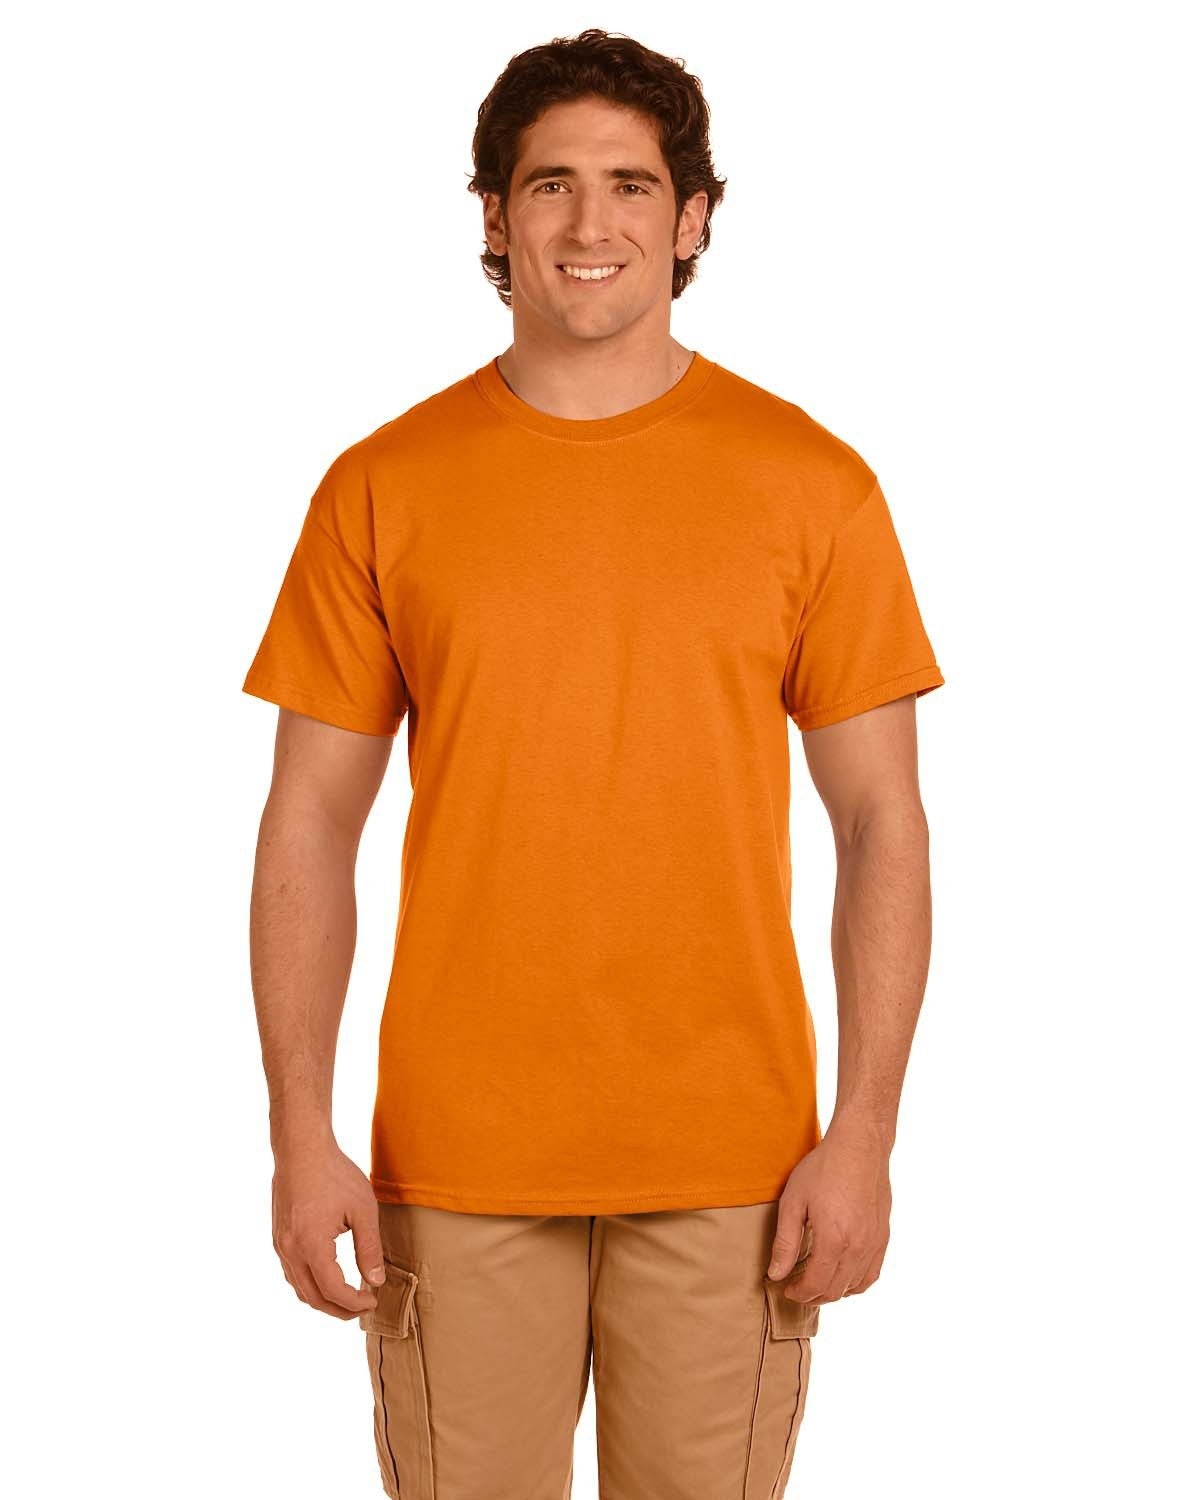 Fruit of the Loom Adult HD Cotton™ T-Shirt TENNESSEE ORANGE